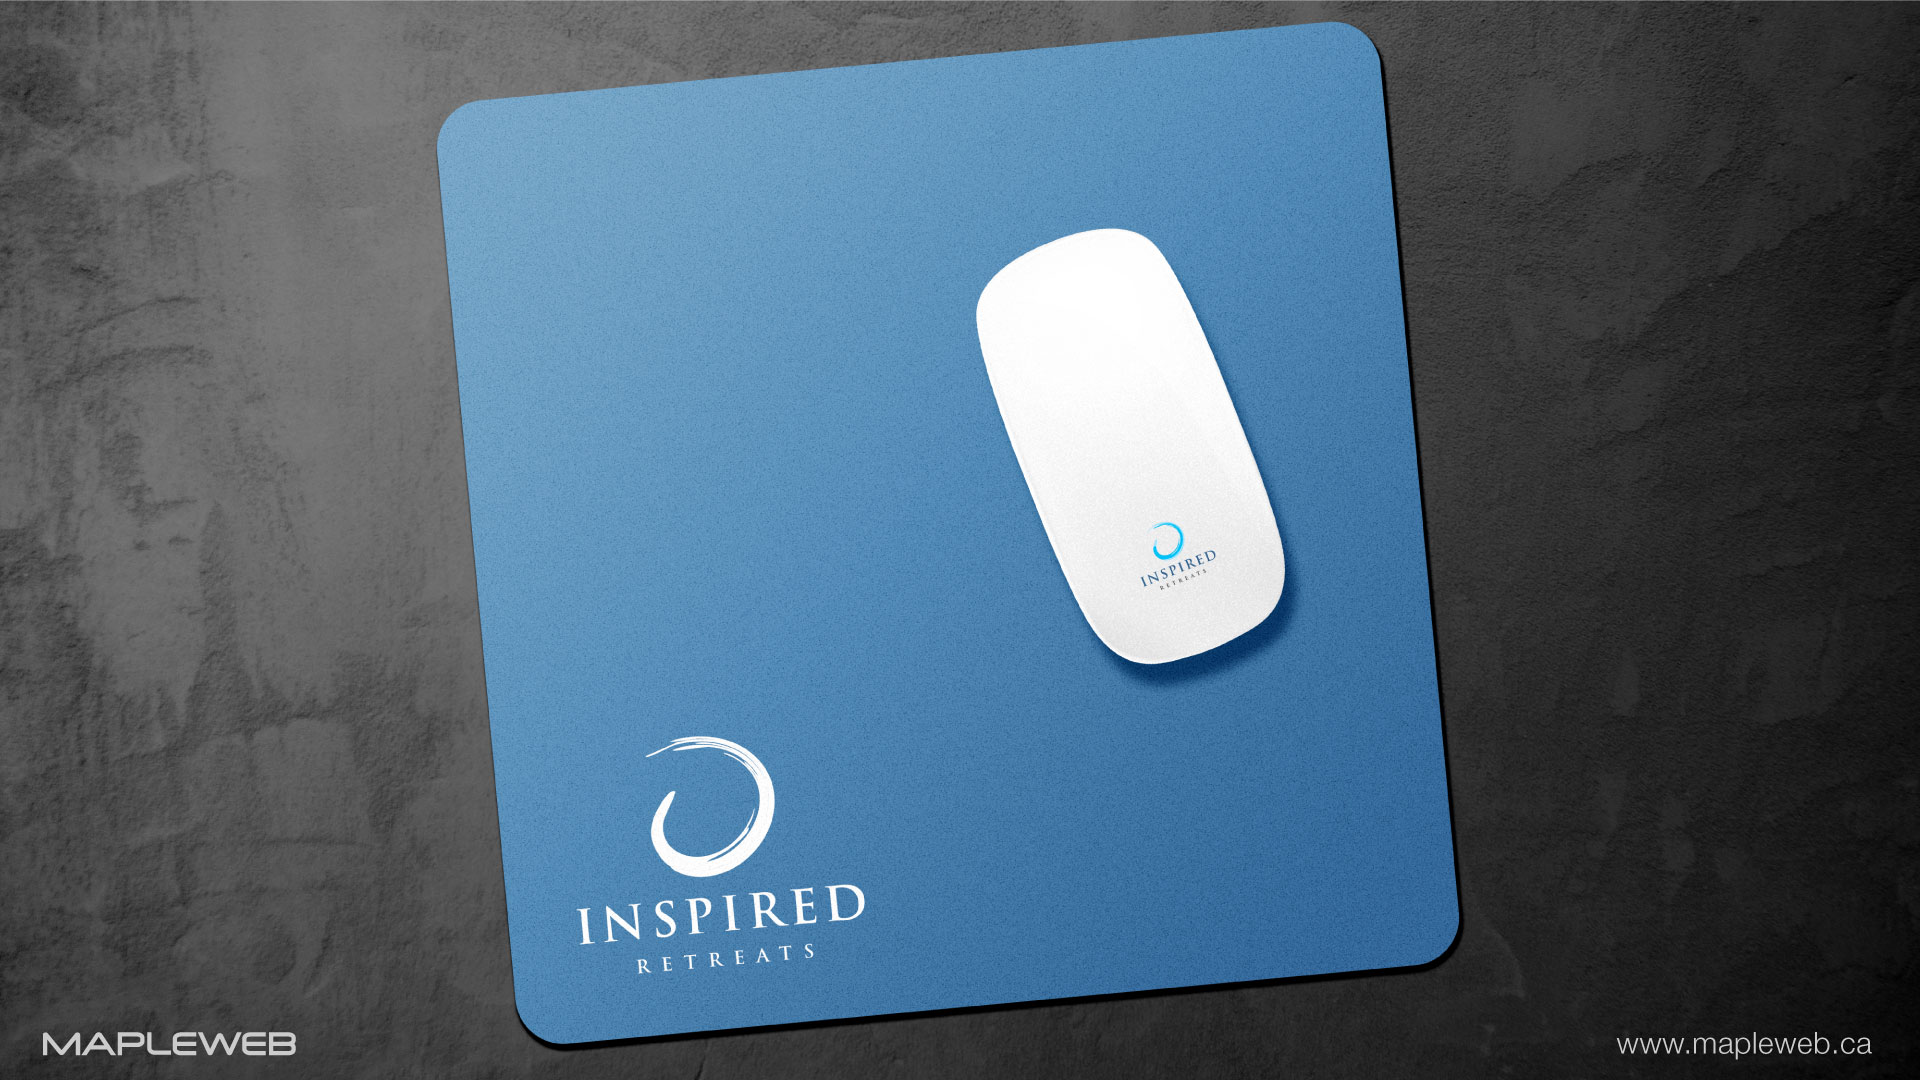 inspired-retreats-brand-logo-design-by-mapleweb-vancouver-canada-mouse-pad-mock